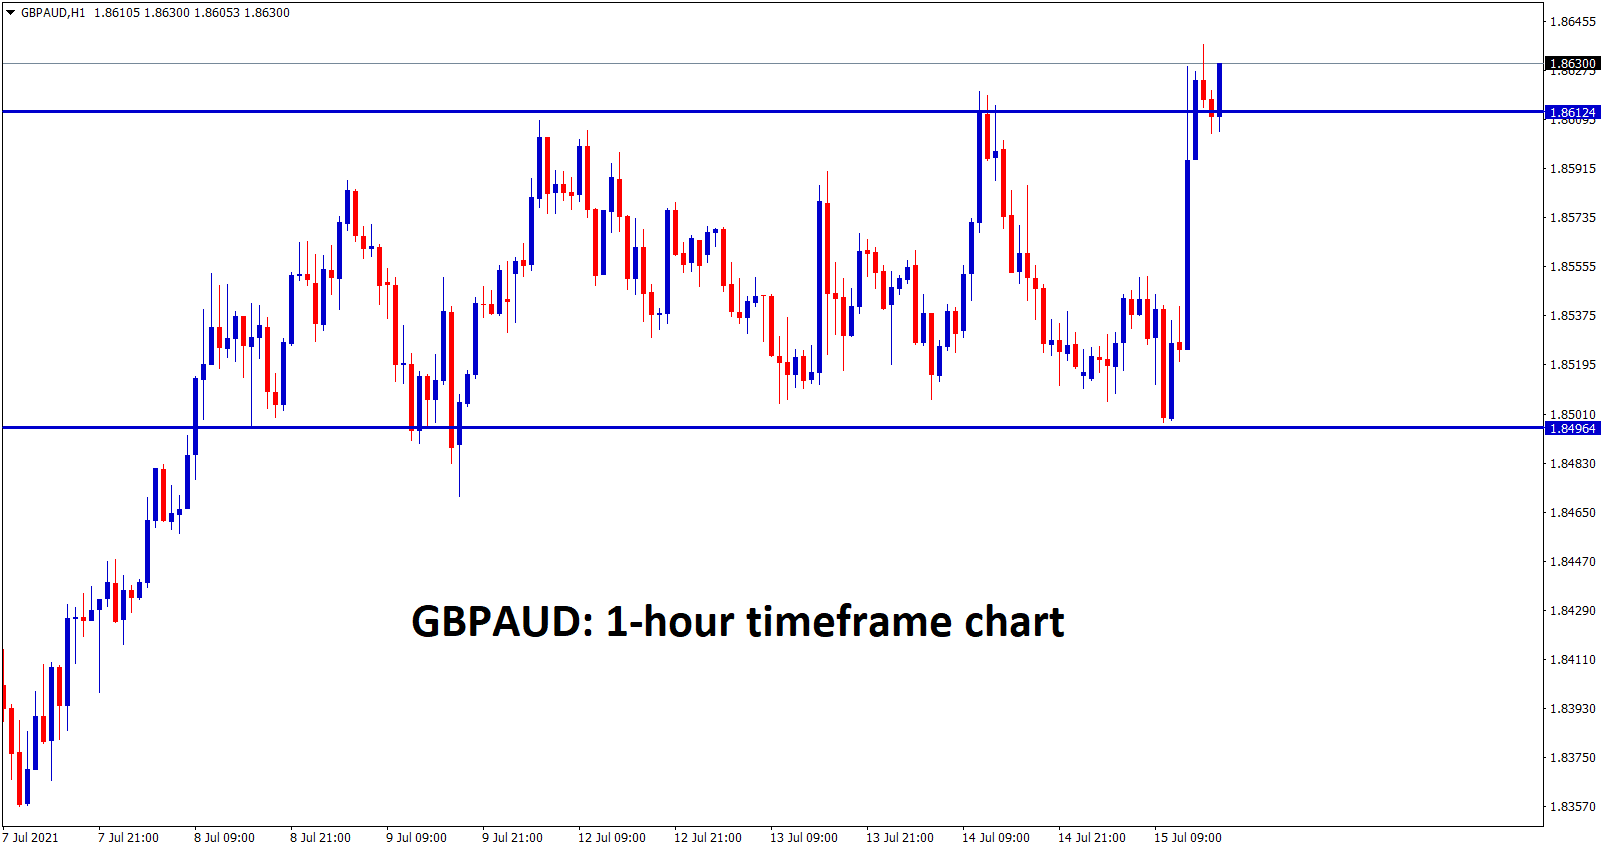 GBPAUD is consolidating between specific price ranges for a long time wait for a strong breakout from this consolidation zone